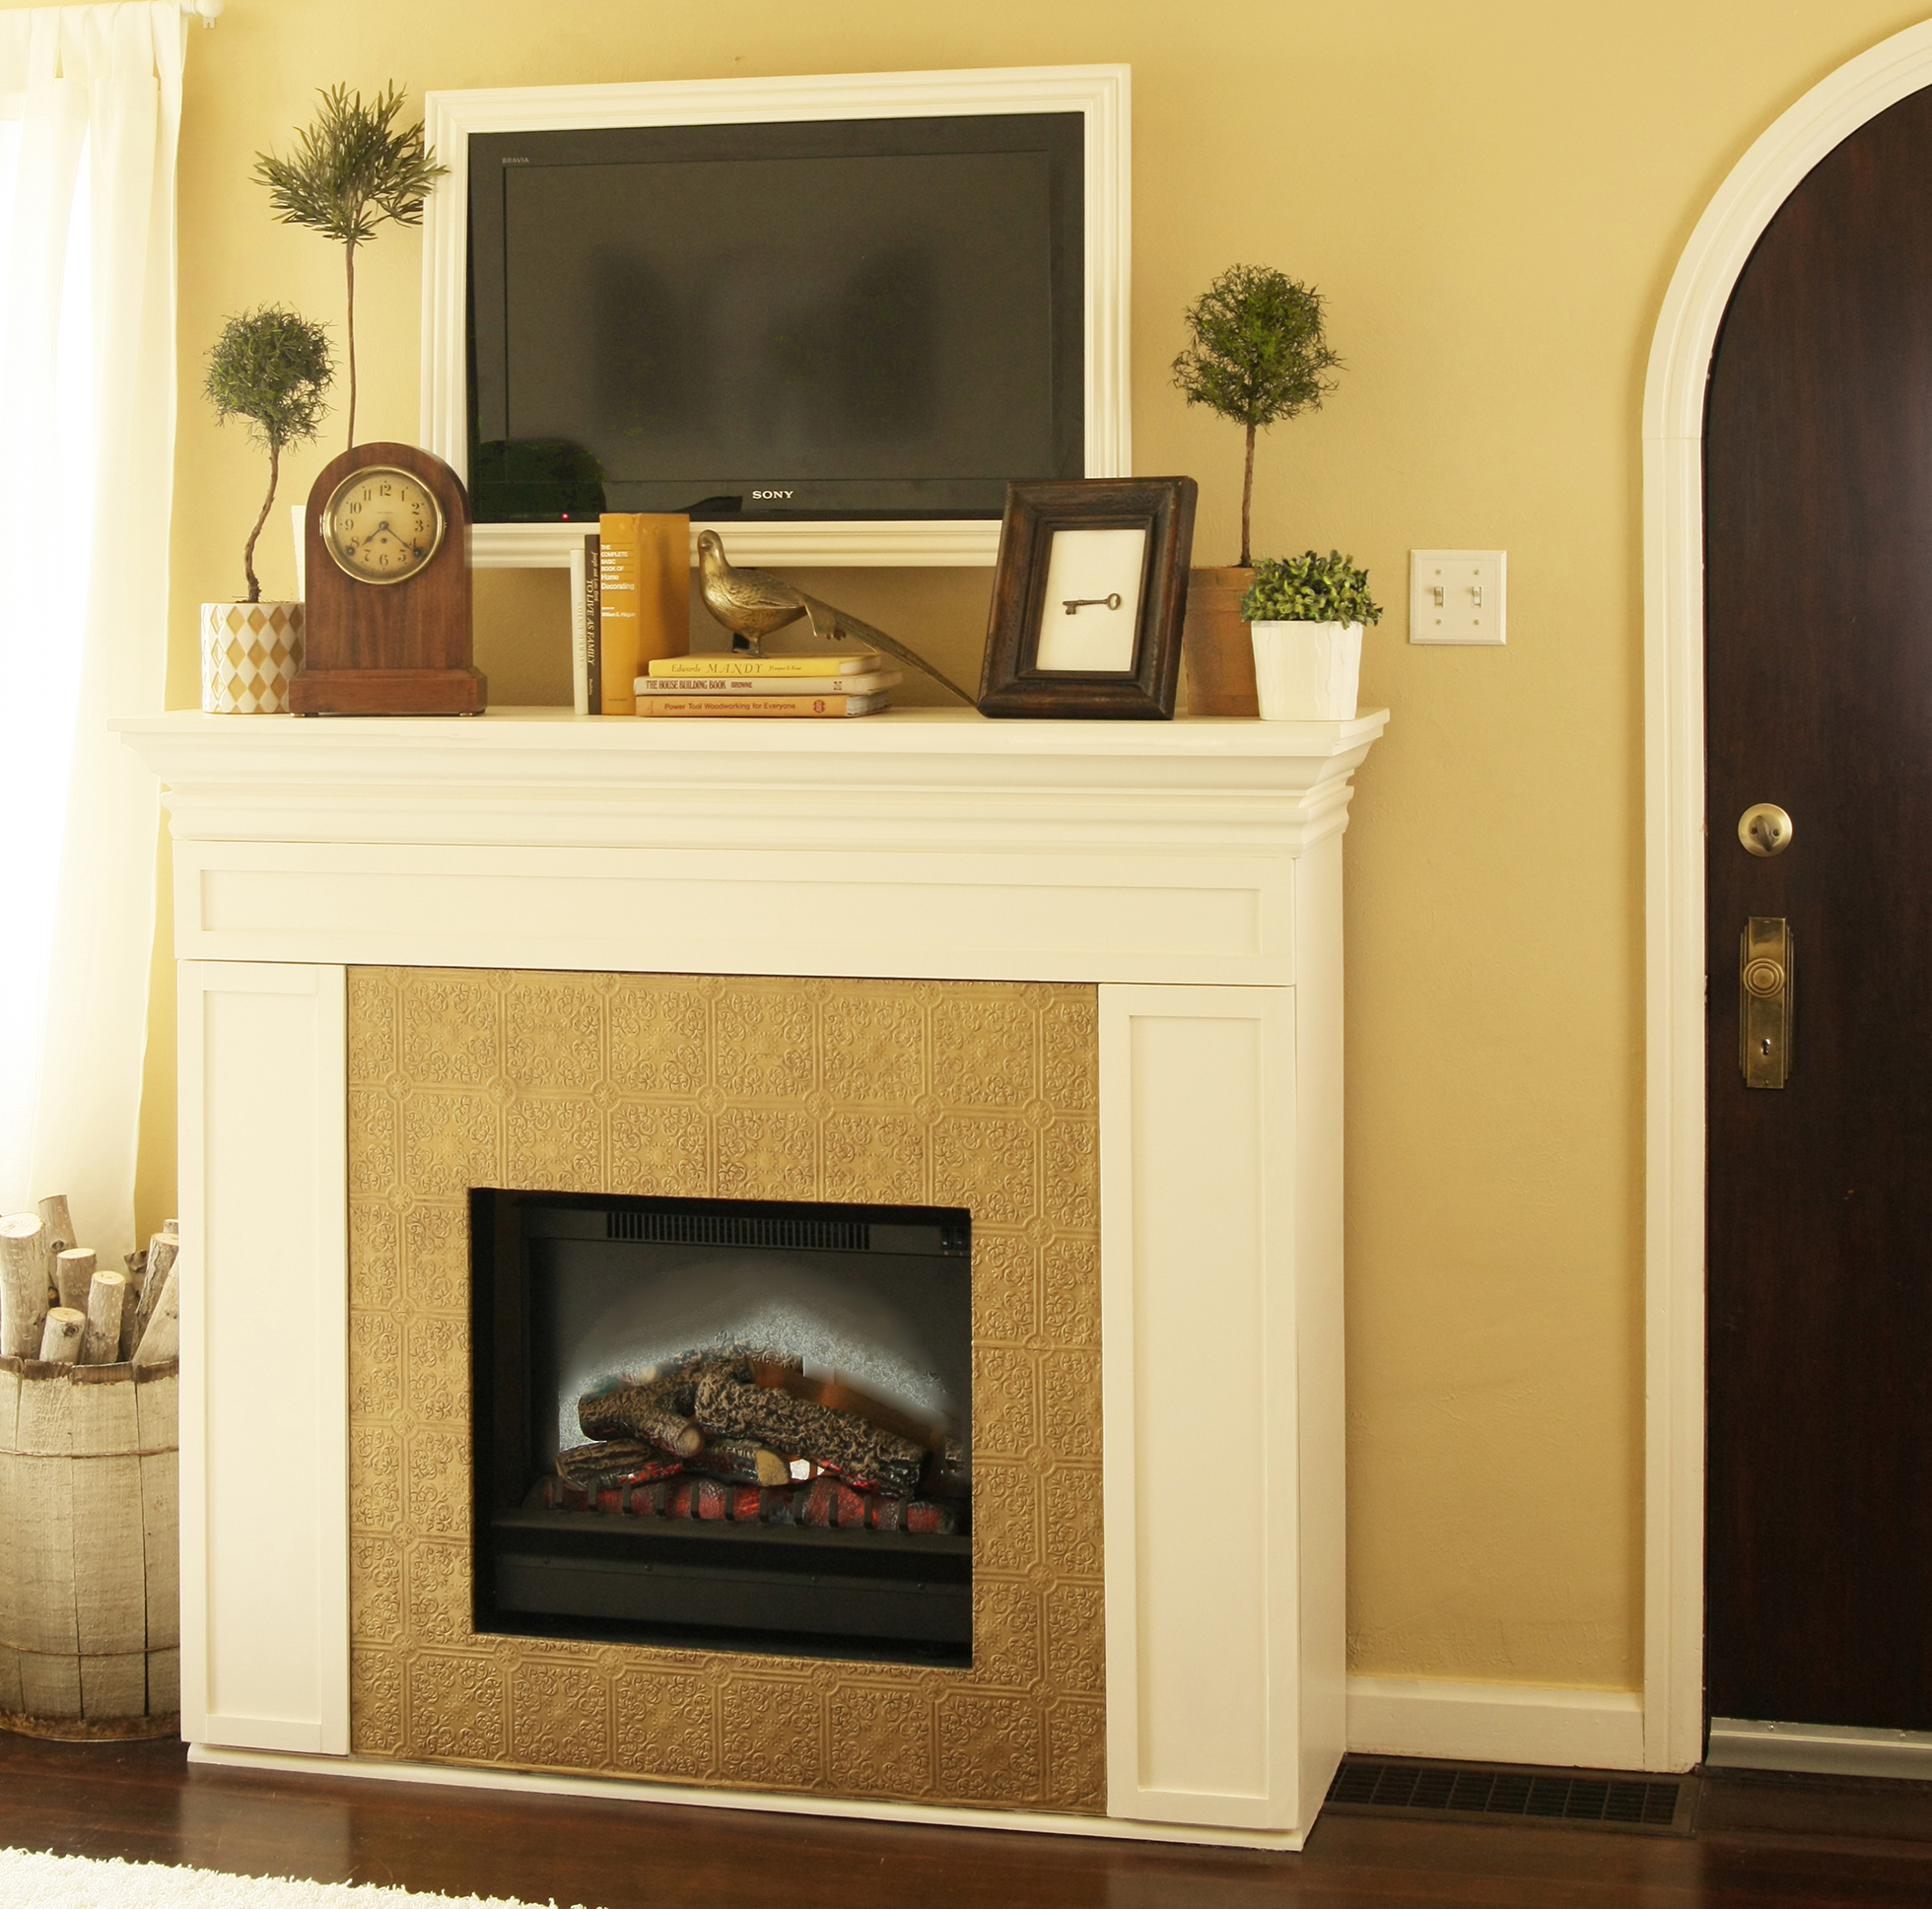 Build Your Own Fireplace Insert Convert Fireplace To Gas Convert Wood Fireplace To Gas